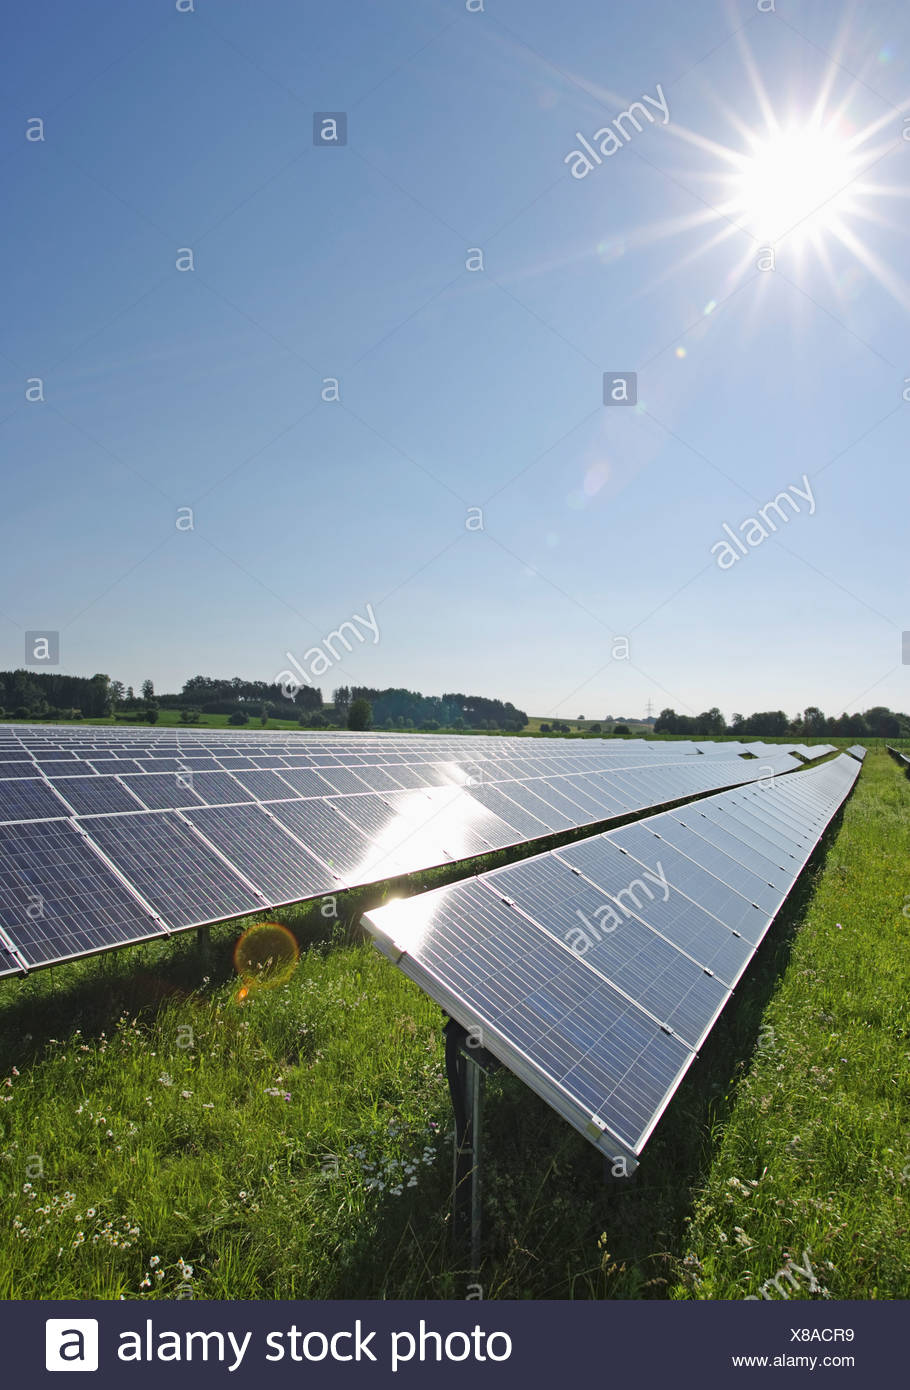 Germany, Bavaria, View of solar panels in field - Stock Image